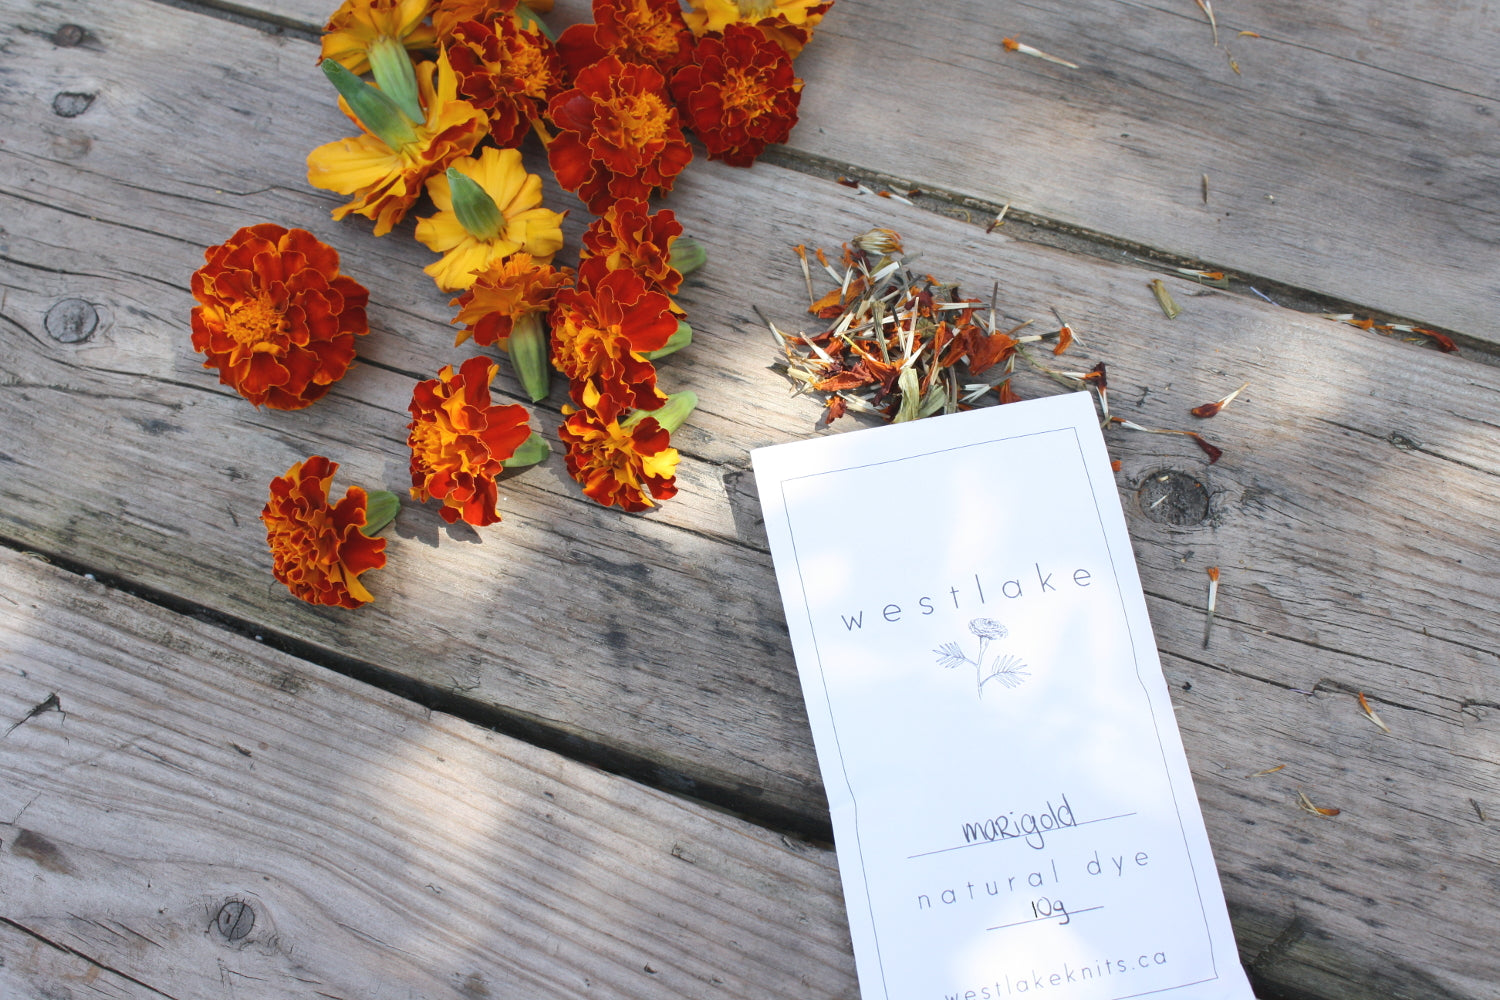 Organic Marigold Natural Dye for dyeing rich yellows and olives, grown in Toronto